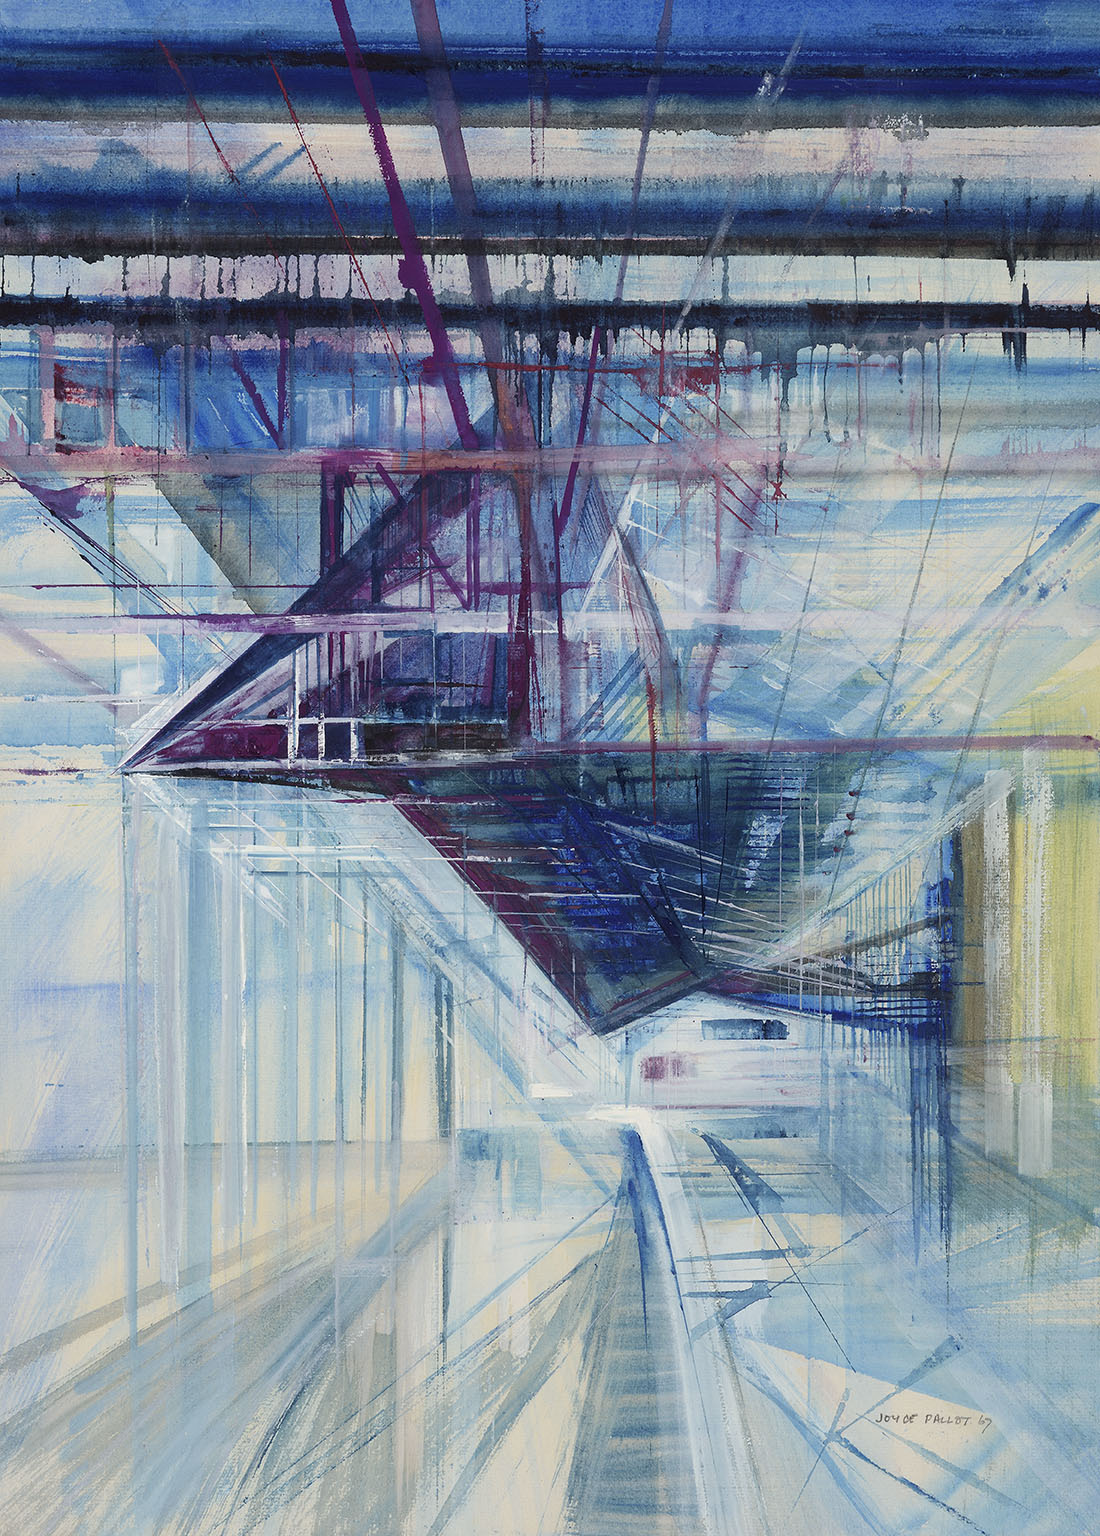 Joyce Pallot (1912-2004)  Station Roof, 1967, Gouache on paper laid on board, 24 ¼ x 17 1/2 in, Signed and dated  [CAS 9] Acquired in 1967